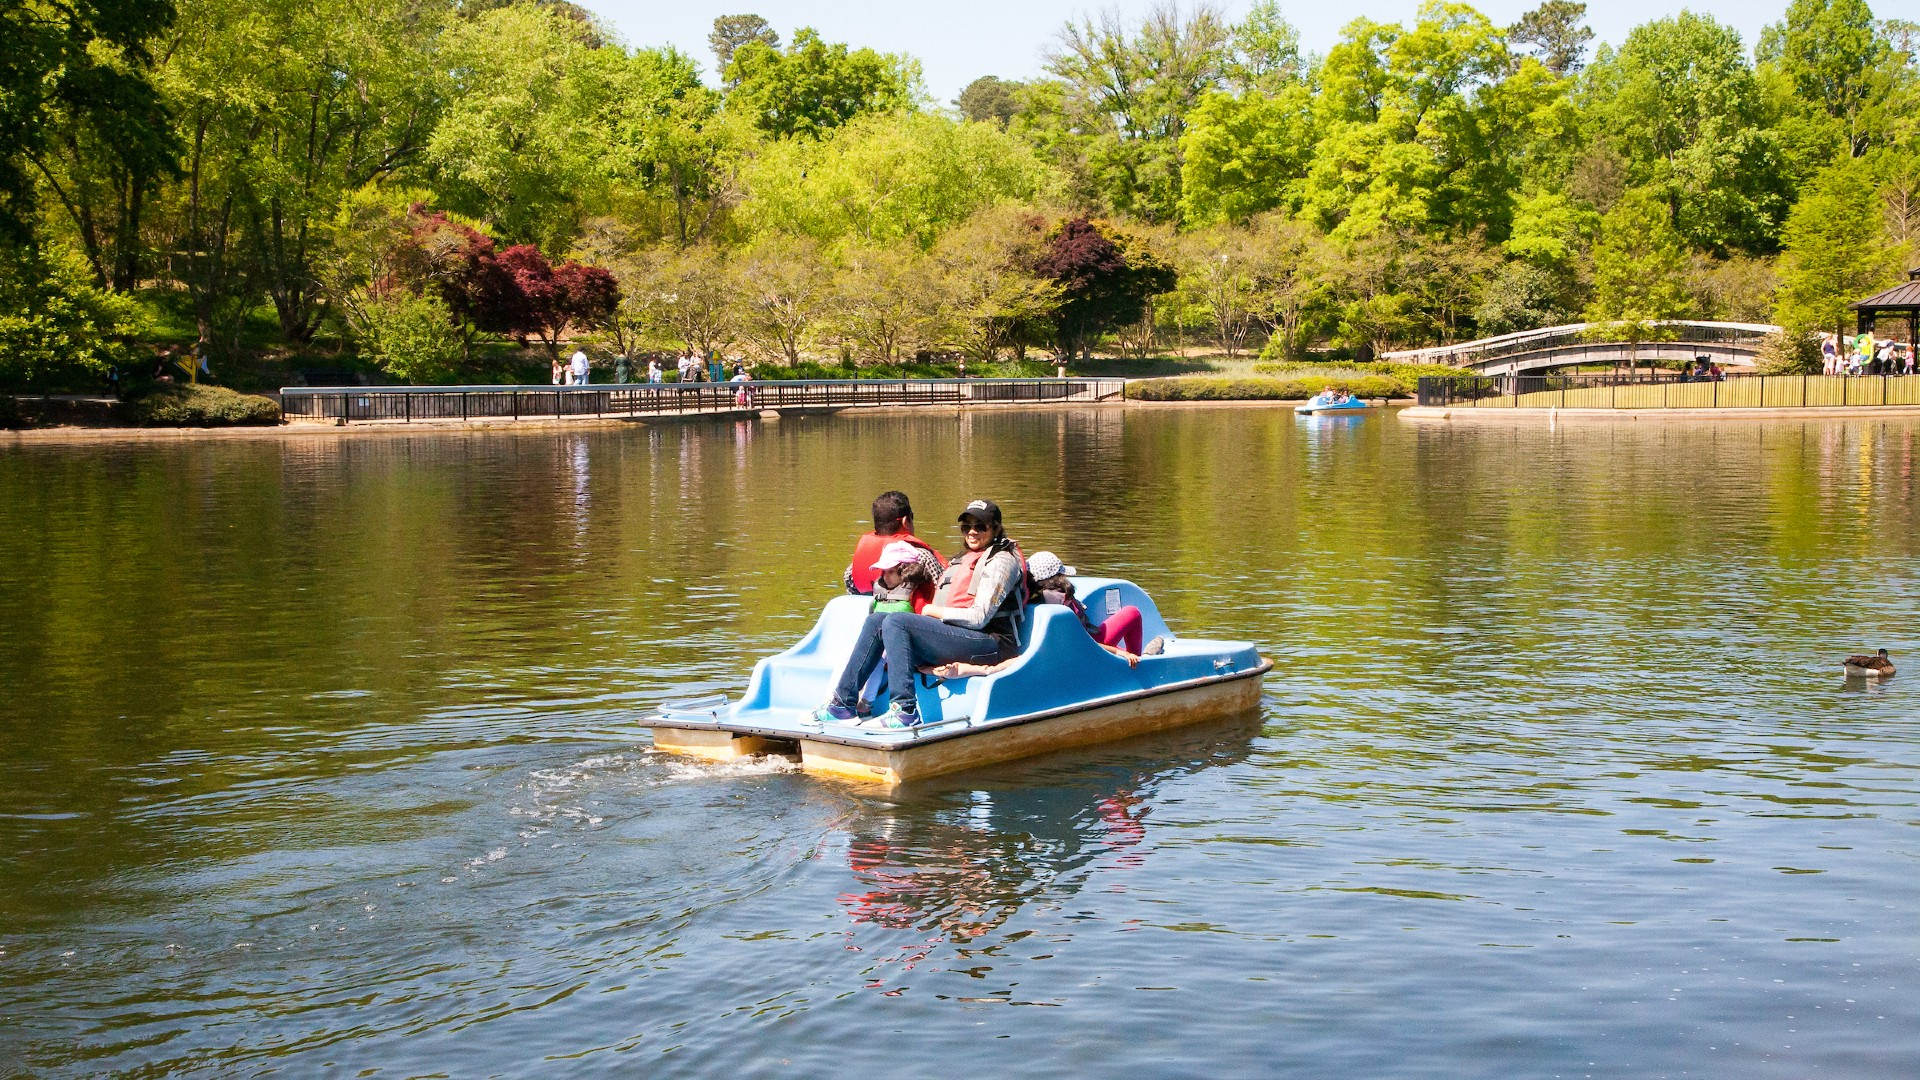 Family of four using a pedalboat at Pullen Park lake